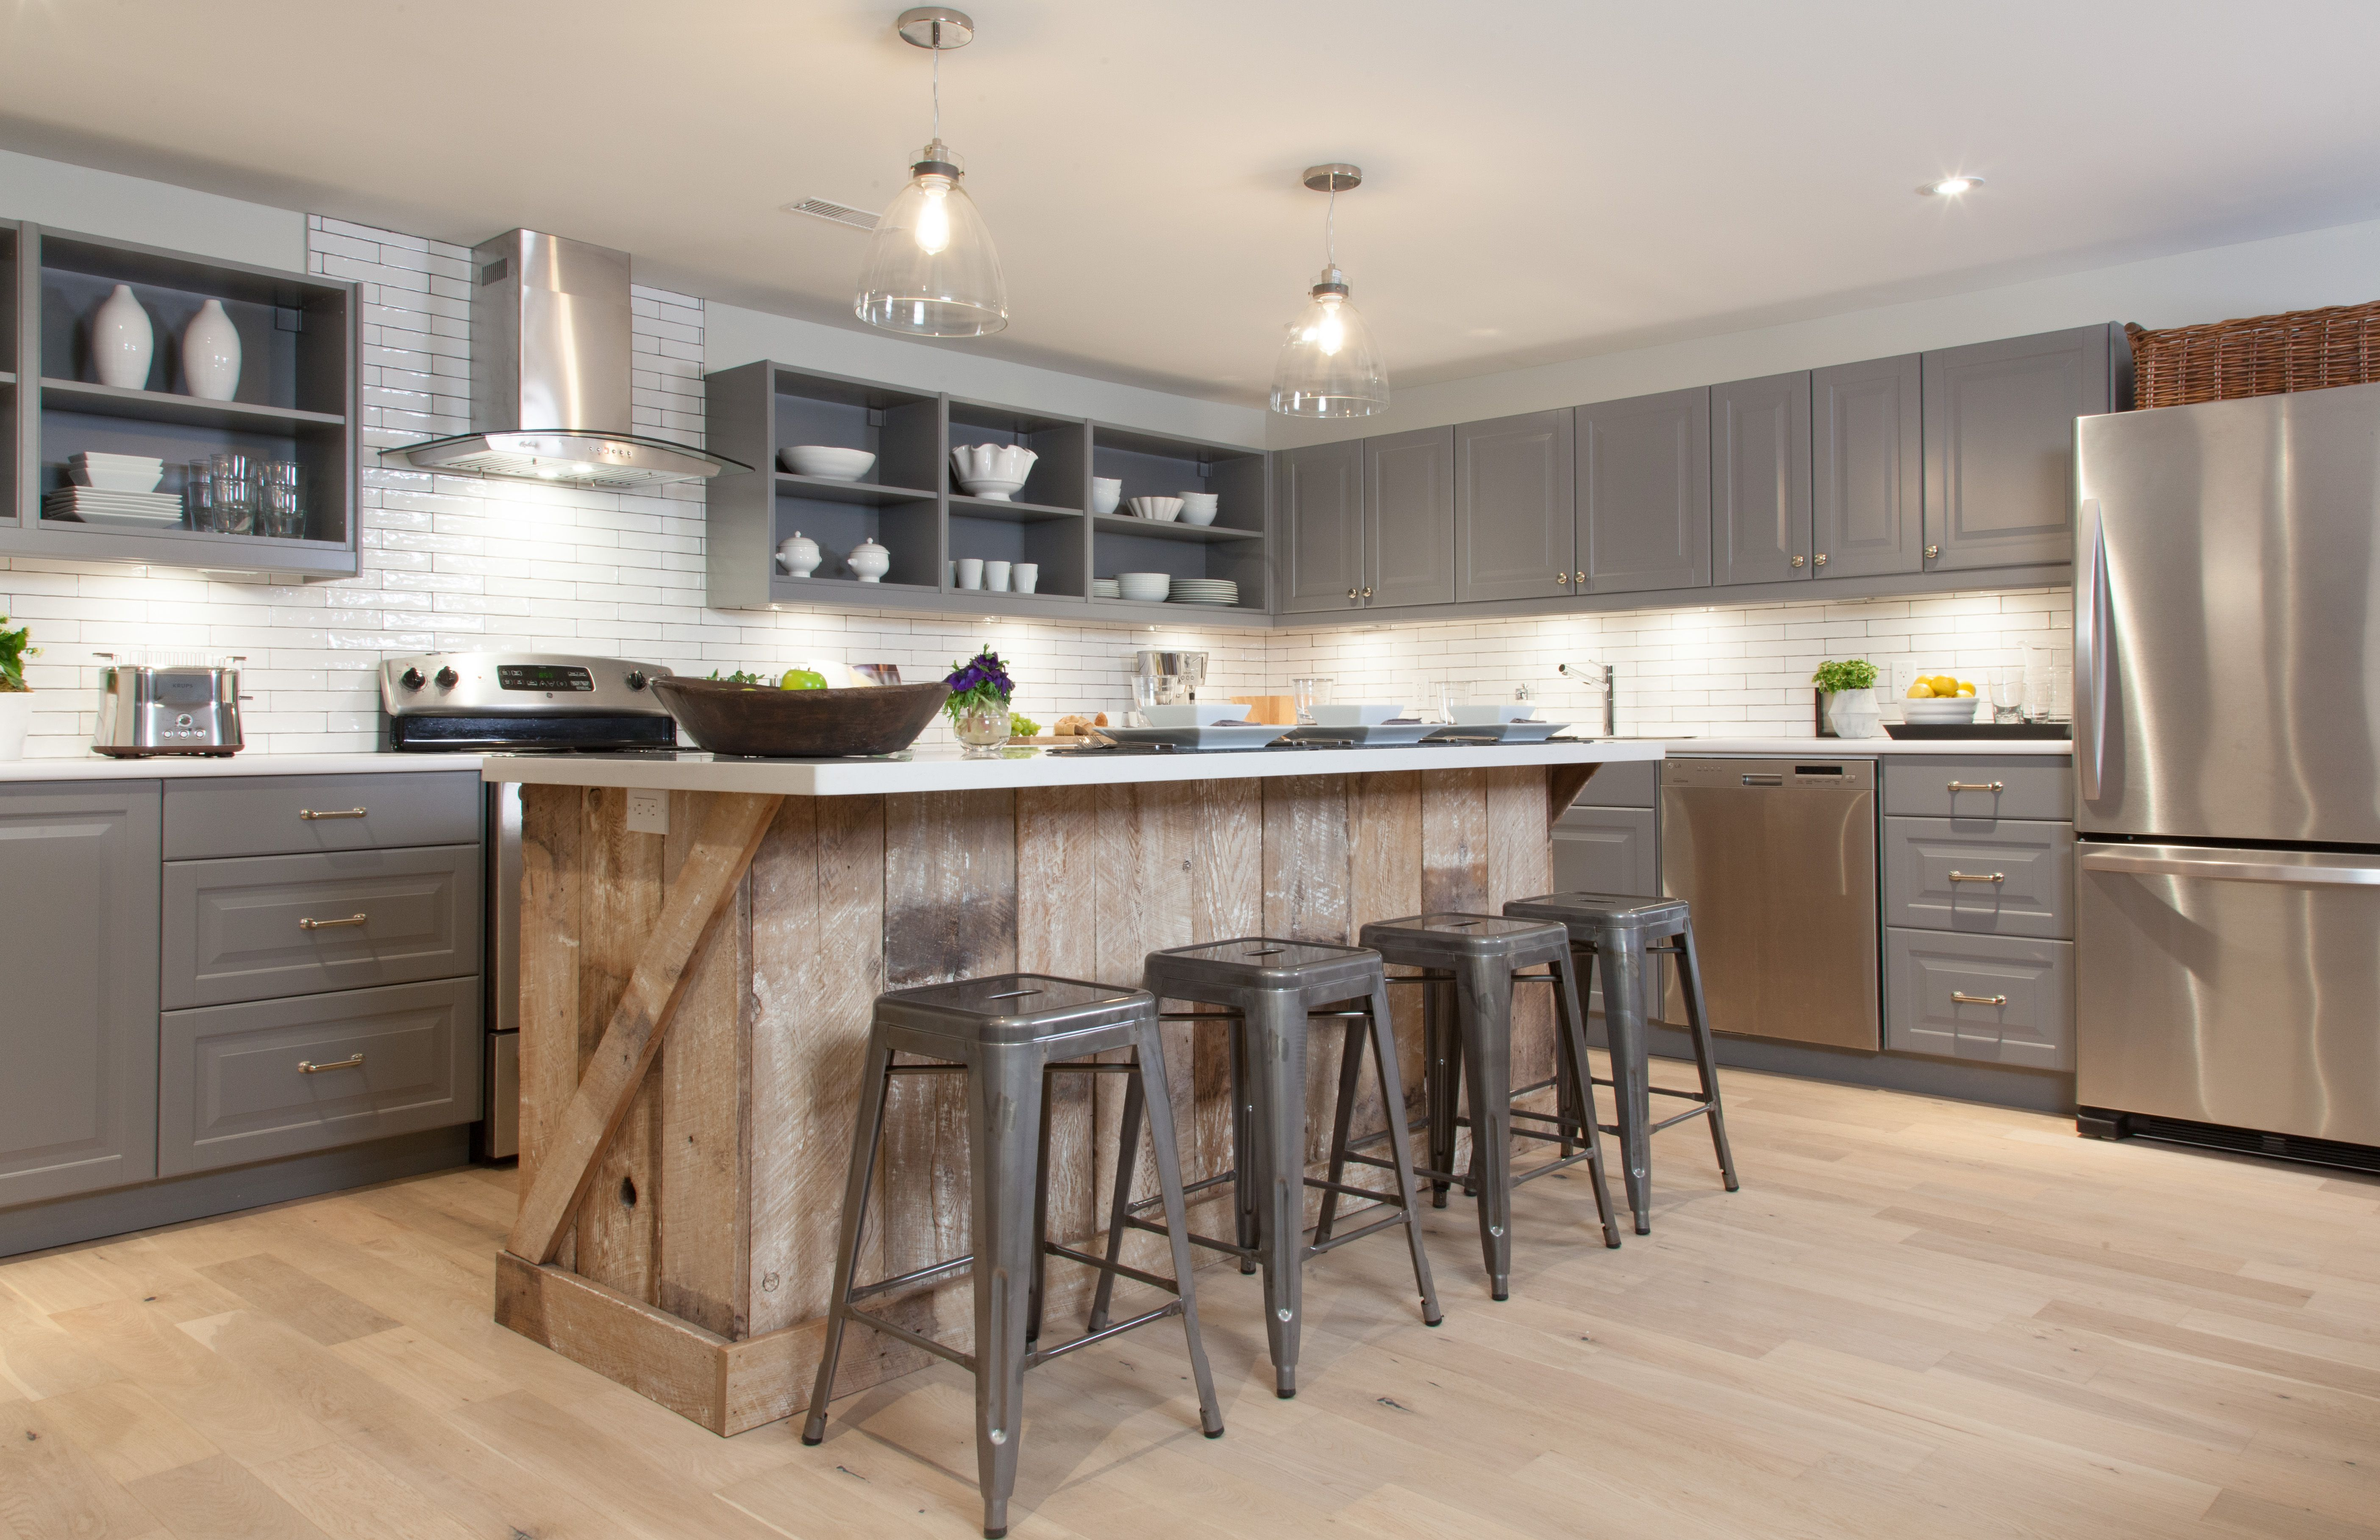 Modern Kitchen Quartz Countertops modern country kitchen with reclaimed wood island and quartz